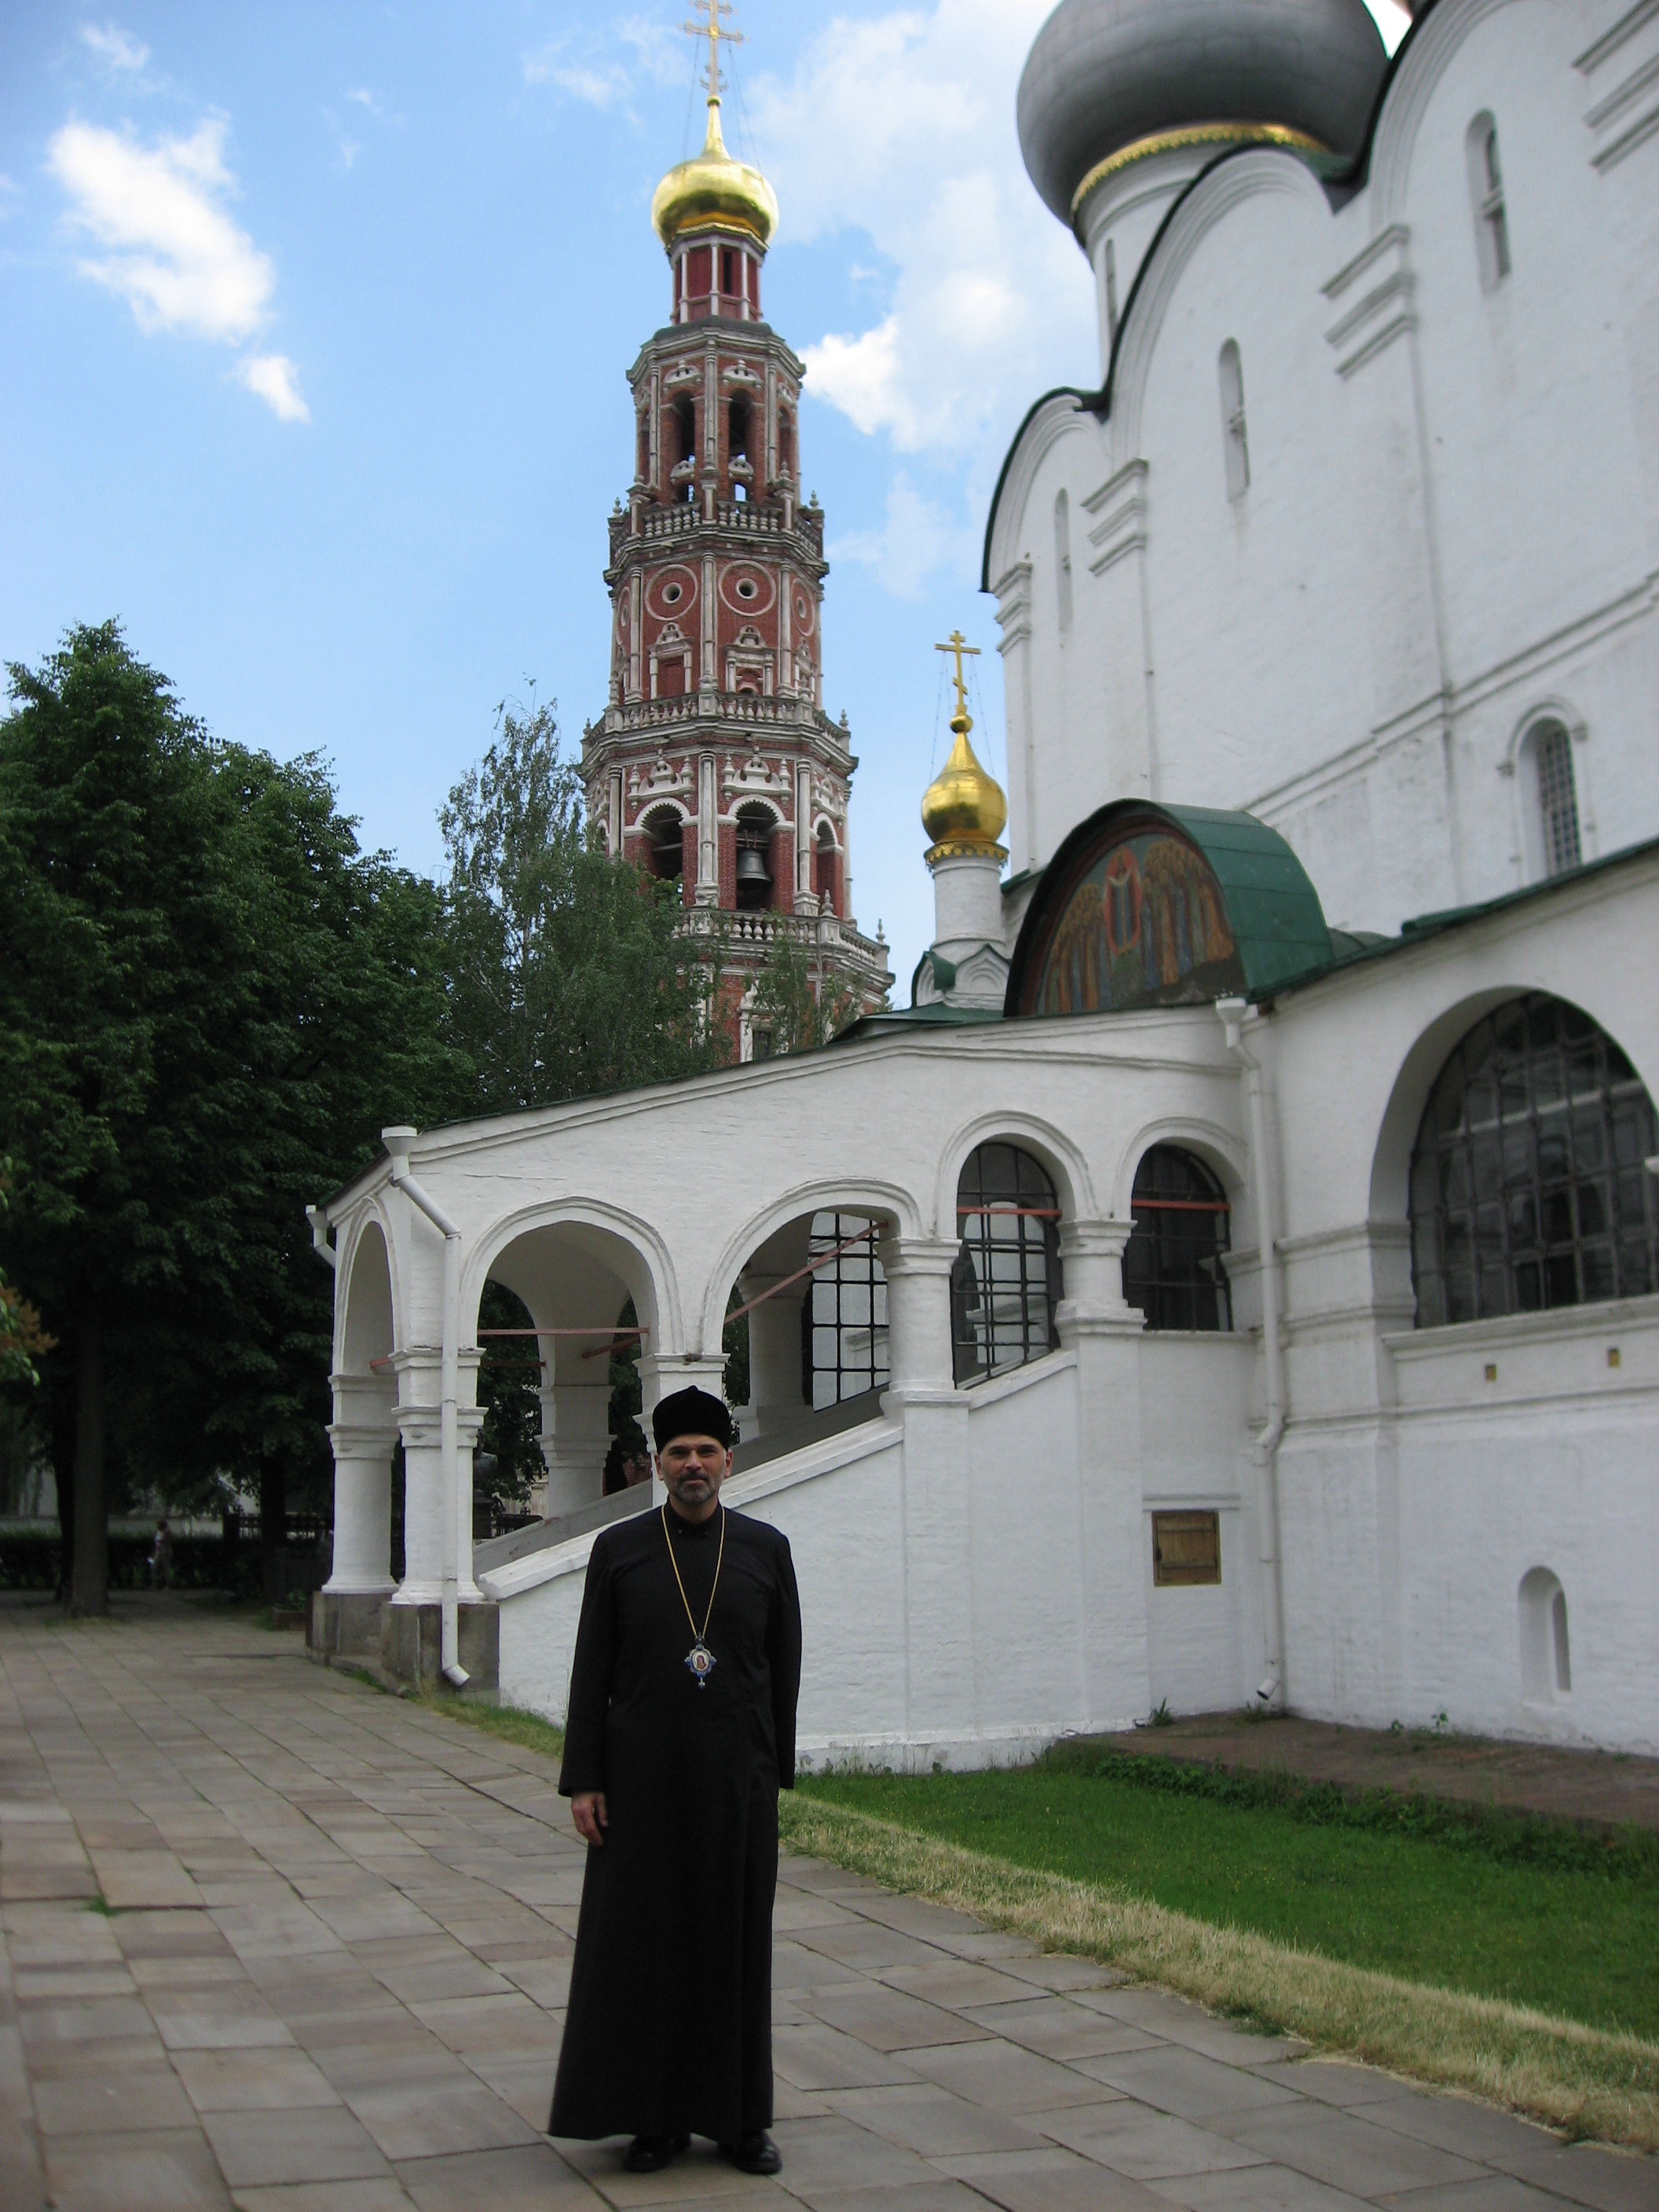 At the Novodevichy Convent